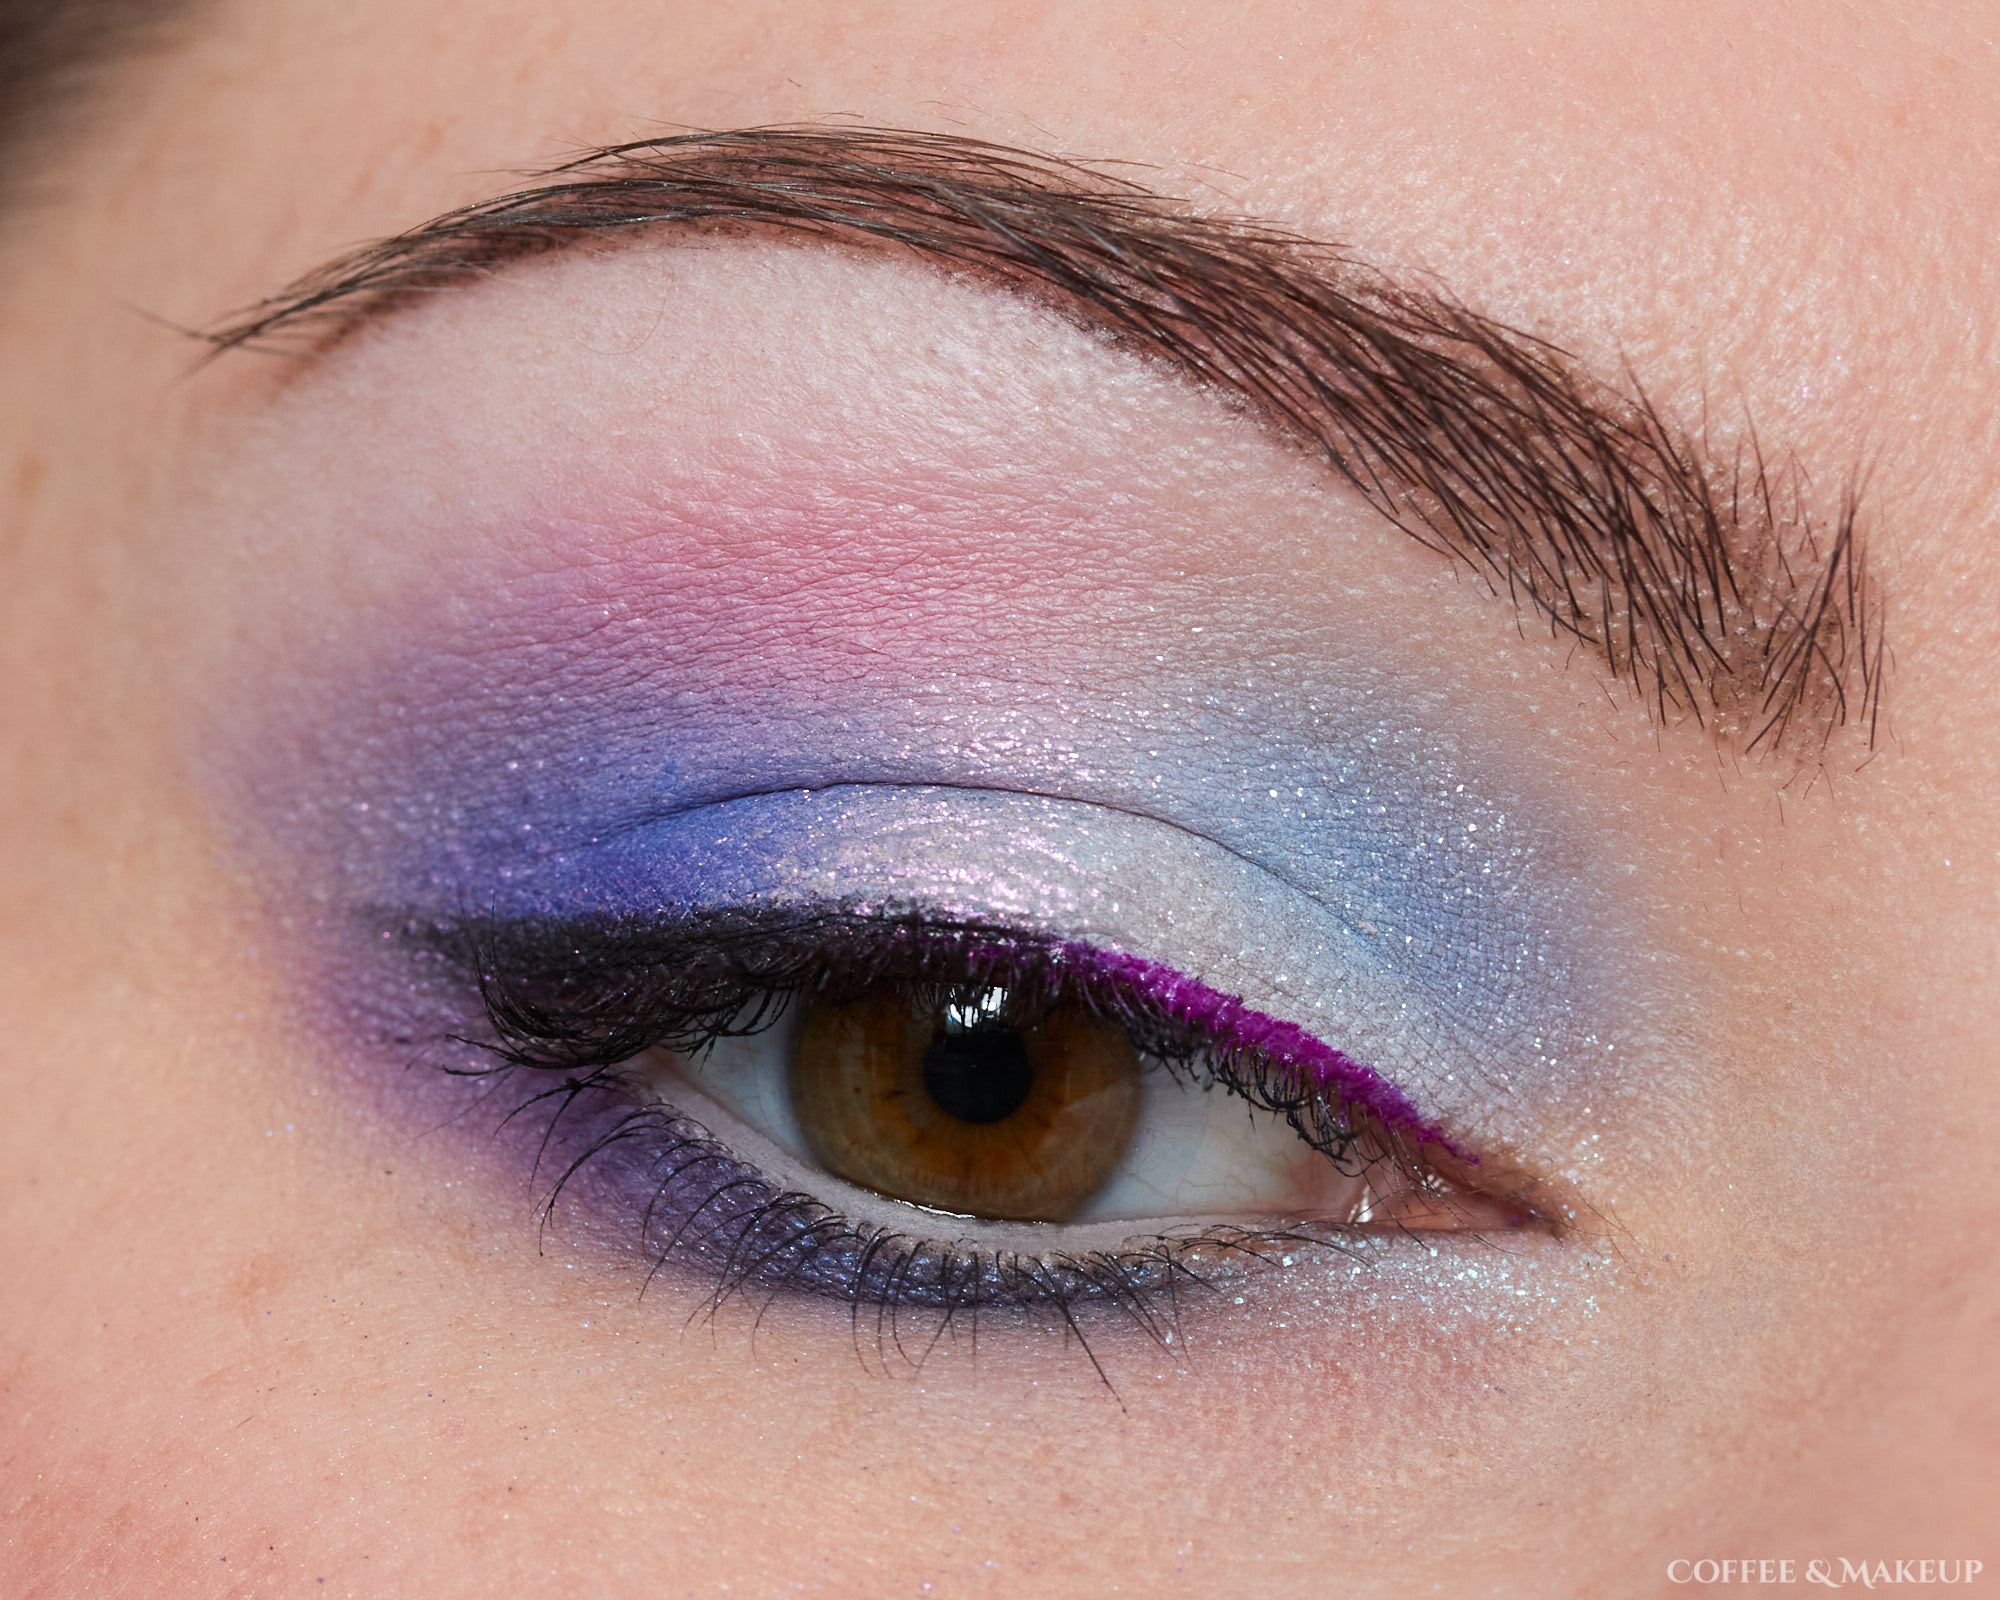 Blue, purple, and pink eyeshadow look